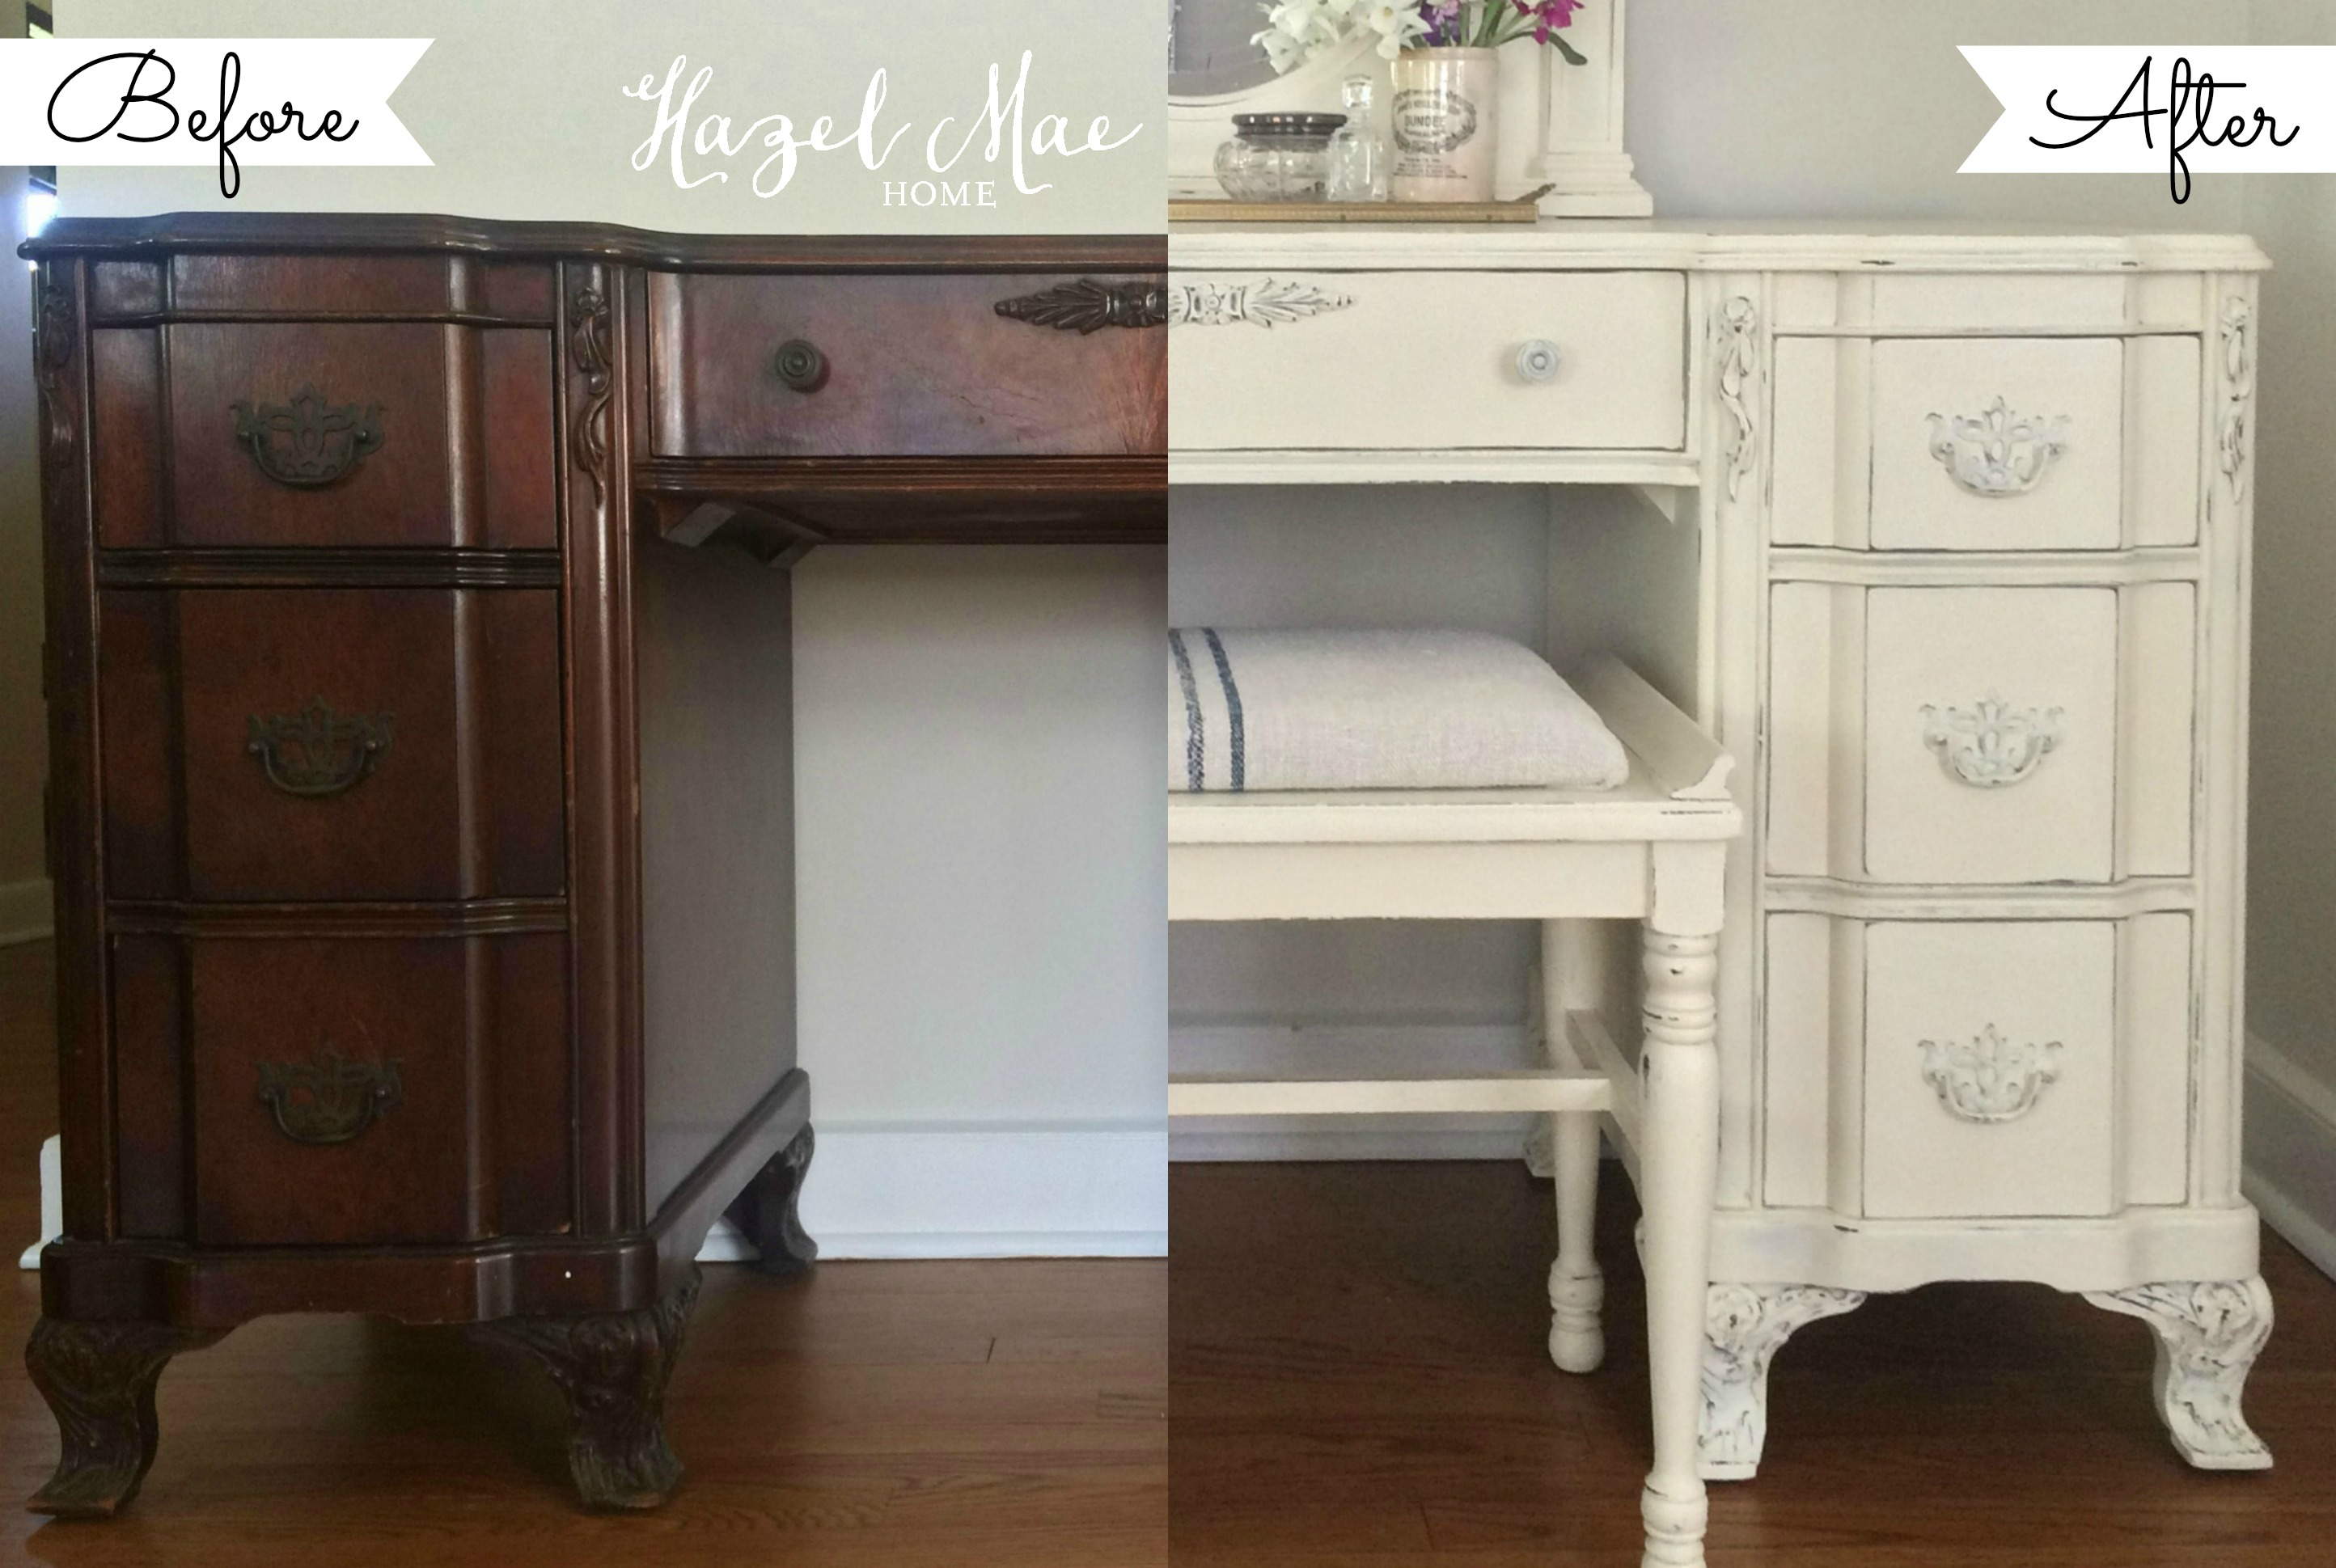 4 Ideas for a Unique Seated Vanity for Your Bathroom - Desk to Vanity